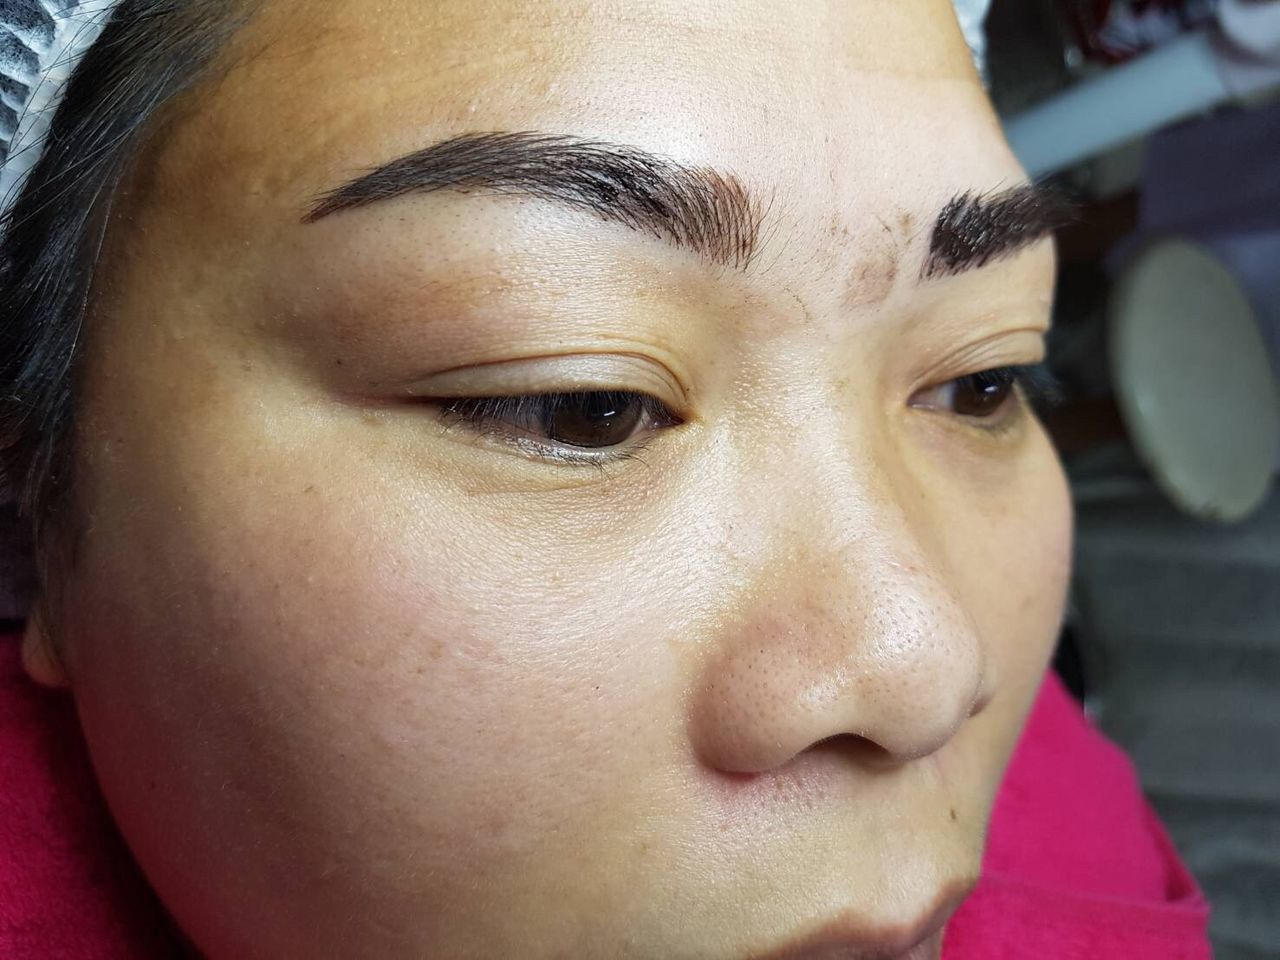 EyeEm Selects Eyebrow Tattoo ASEAN People Close-up Real People Human Eye Human Face One Person Young Adult Human Body Part Portrait Young Women Day Indoors  Eyebrow Eyelash People